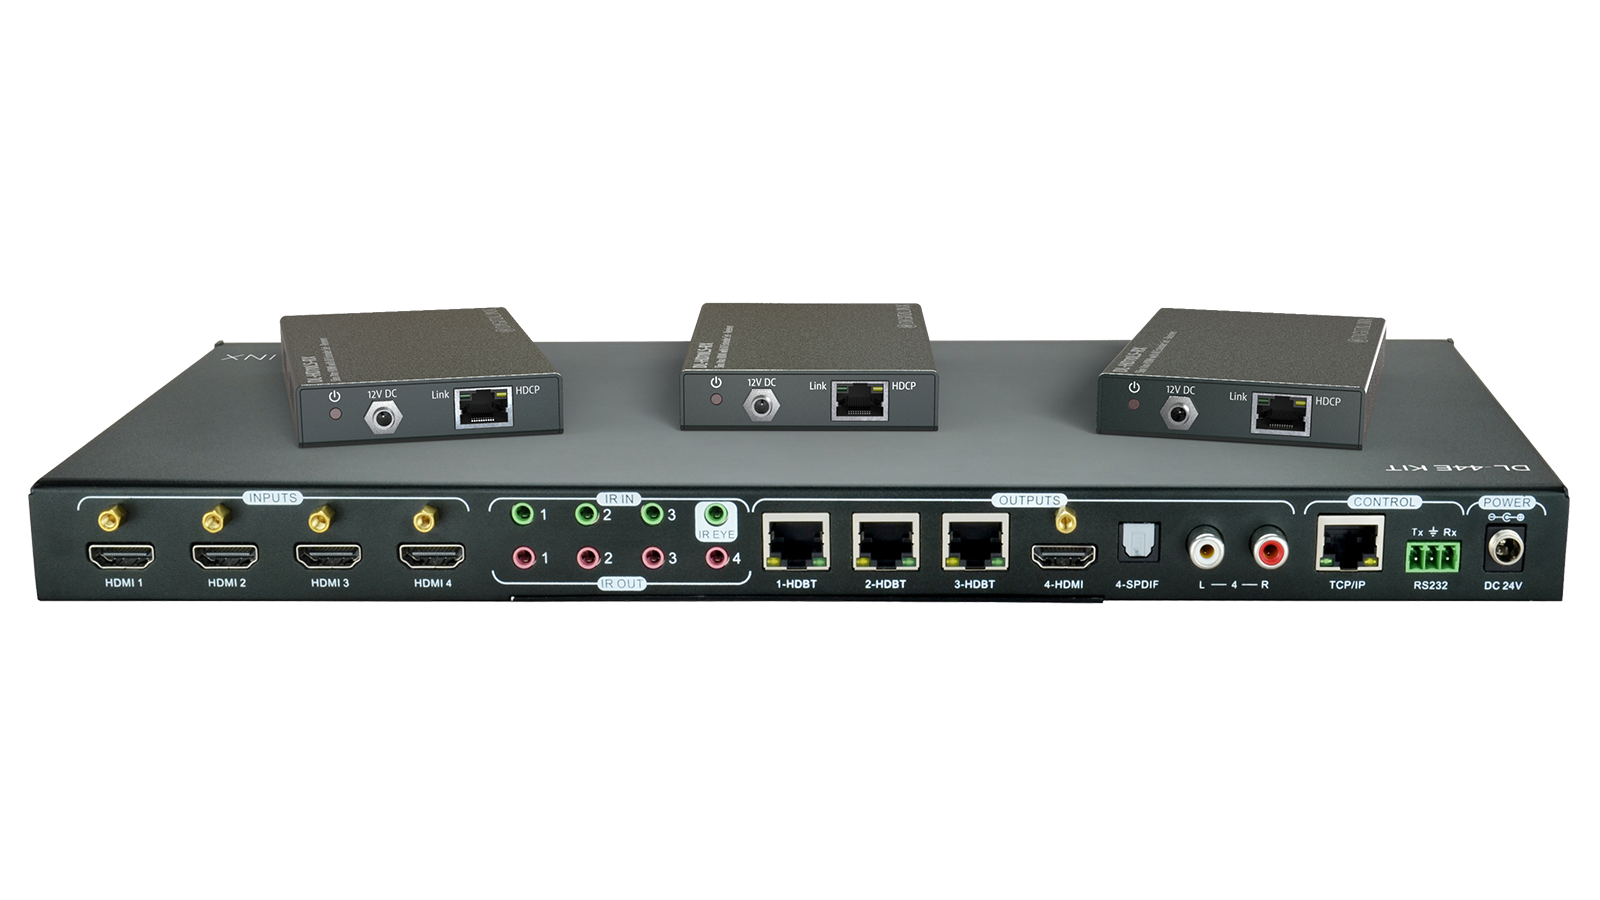 Dl 44e Kit 4x4 4k Hdbt Matrix Switch Kitted With 3